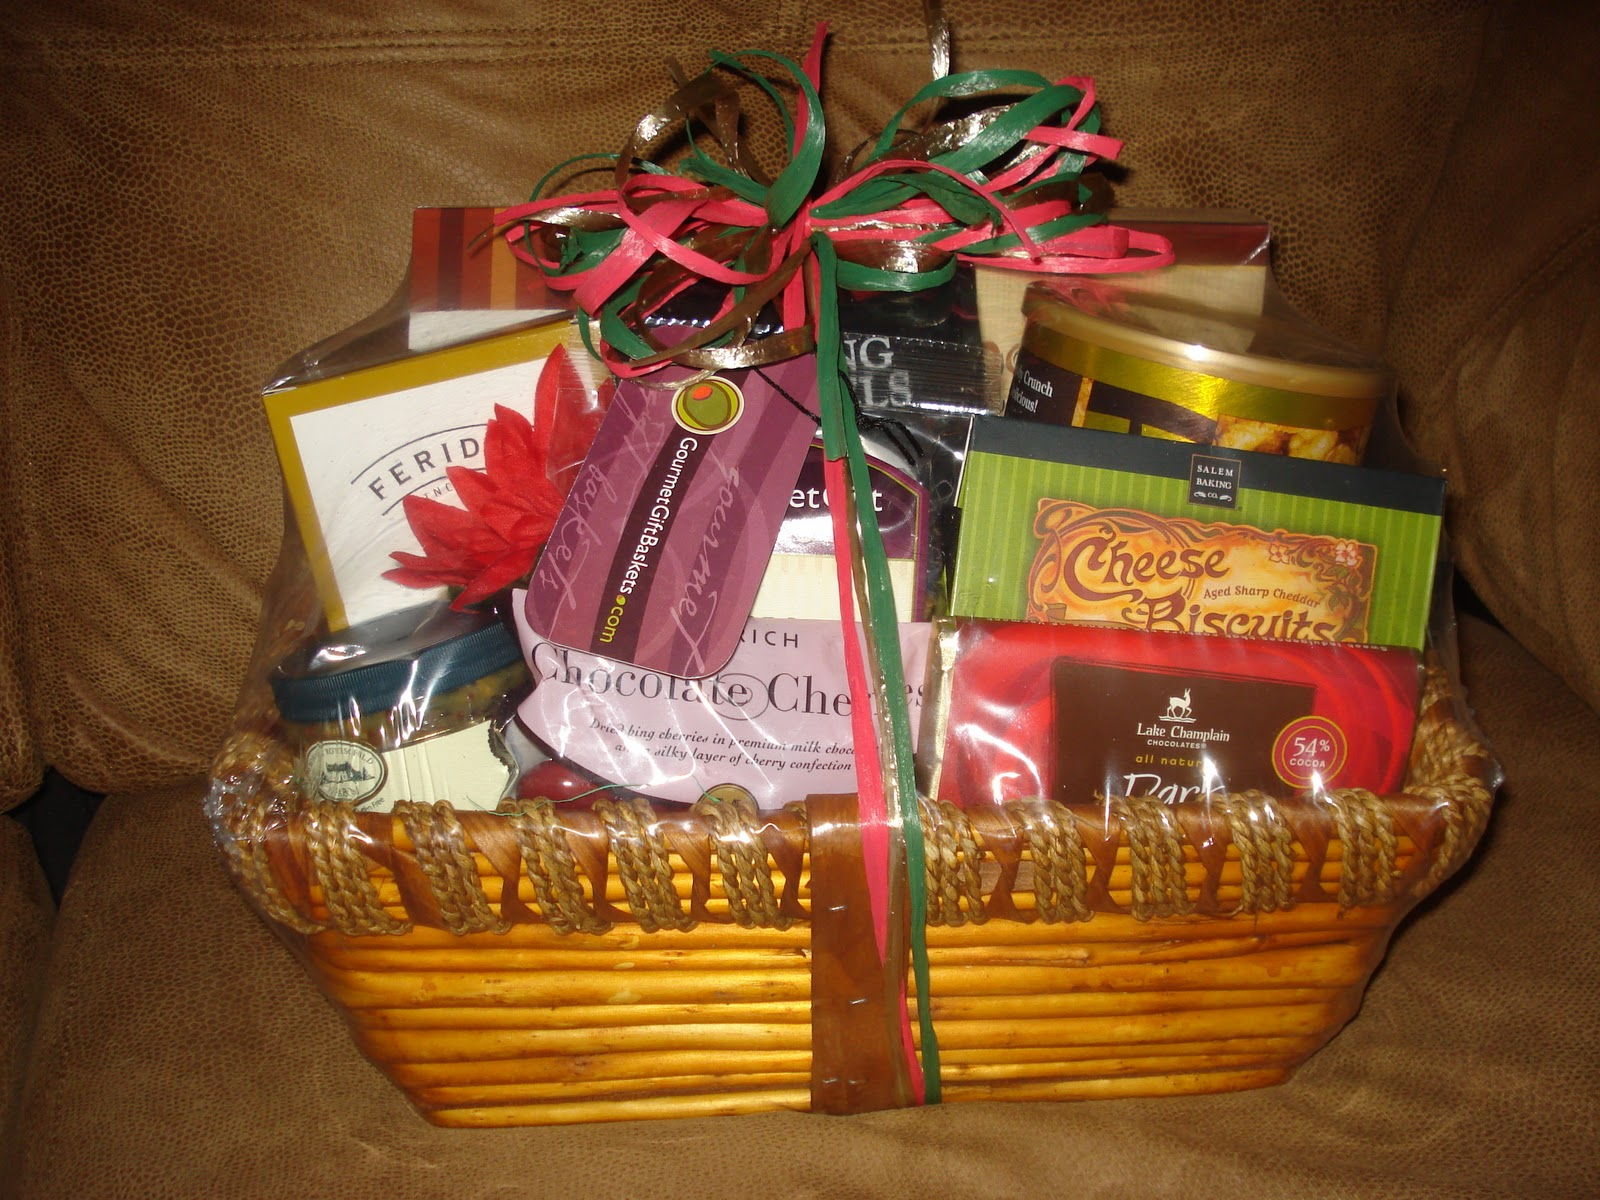 Gift Baskets For Birthdays Christmas Valentines Day New Years Anniversarys New Baby Etc These Baskets Very In Price But They Are So Worth It